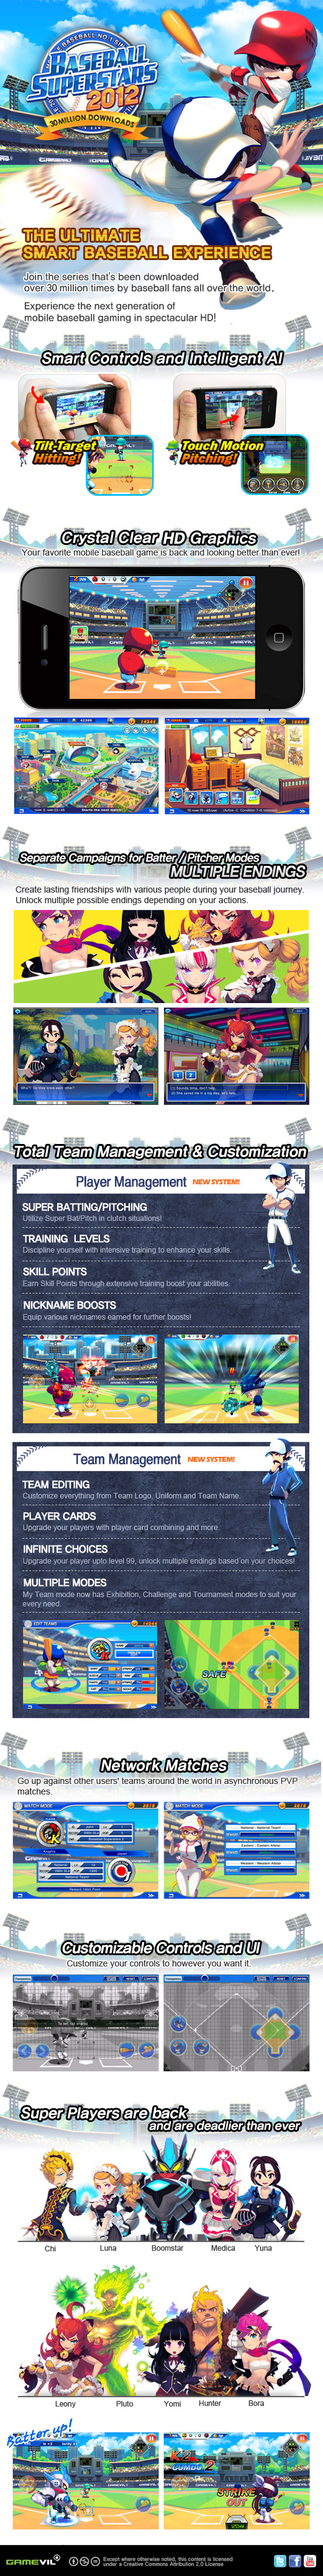 [GAMEVIL] Baseball Superstars 2012 is Coming Soon to the ...